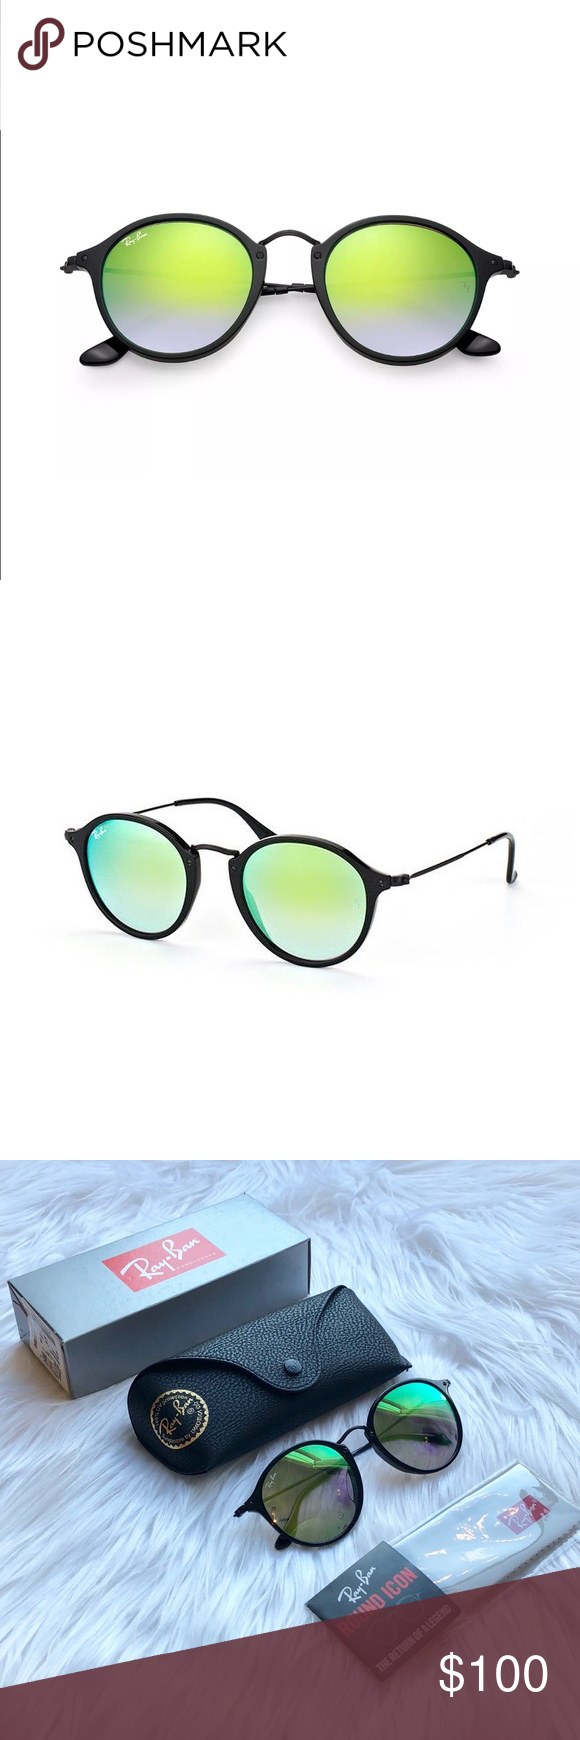 8aca145a17d8 NEW    Ray-Ban RB2447 Round Fleck Sunglasses Authentic Ray-Ban Icons RB2447